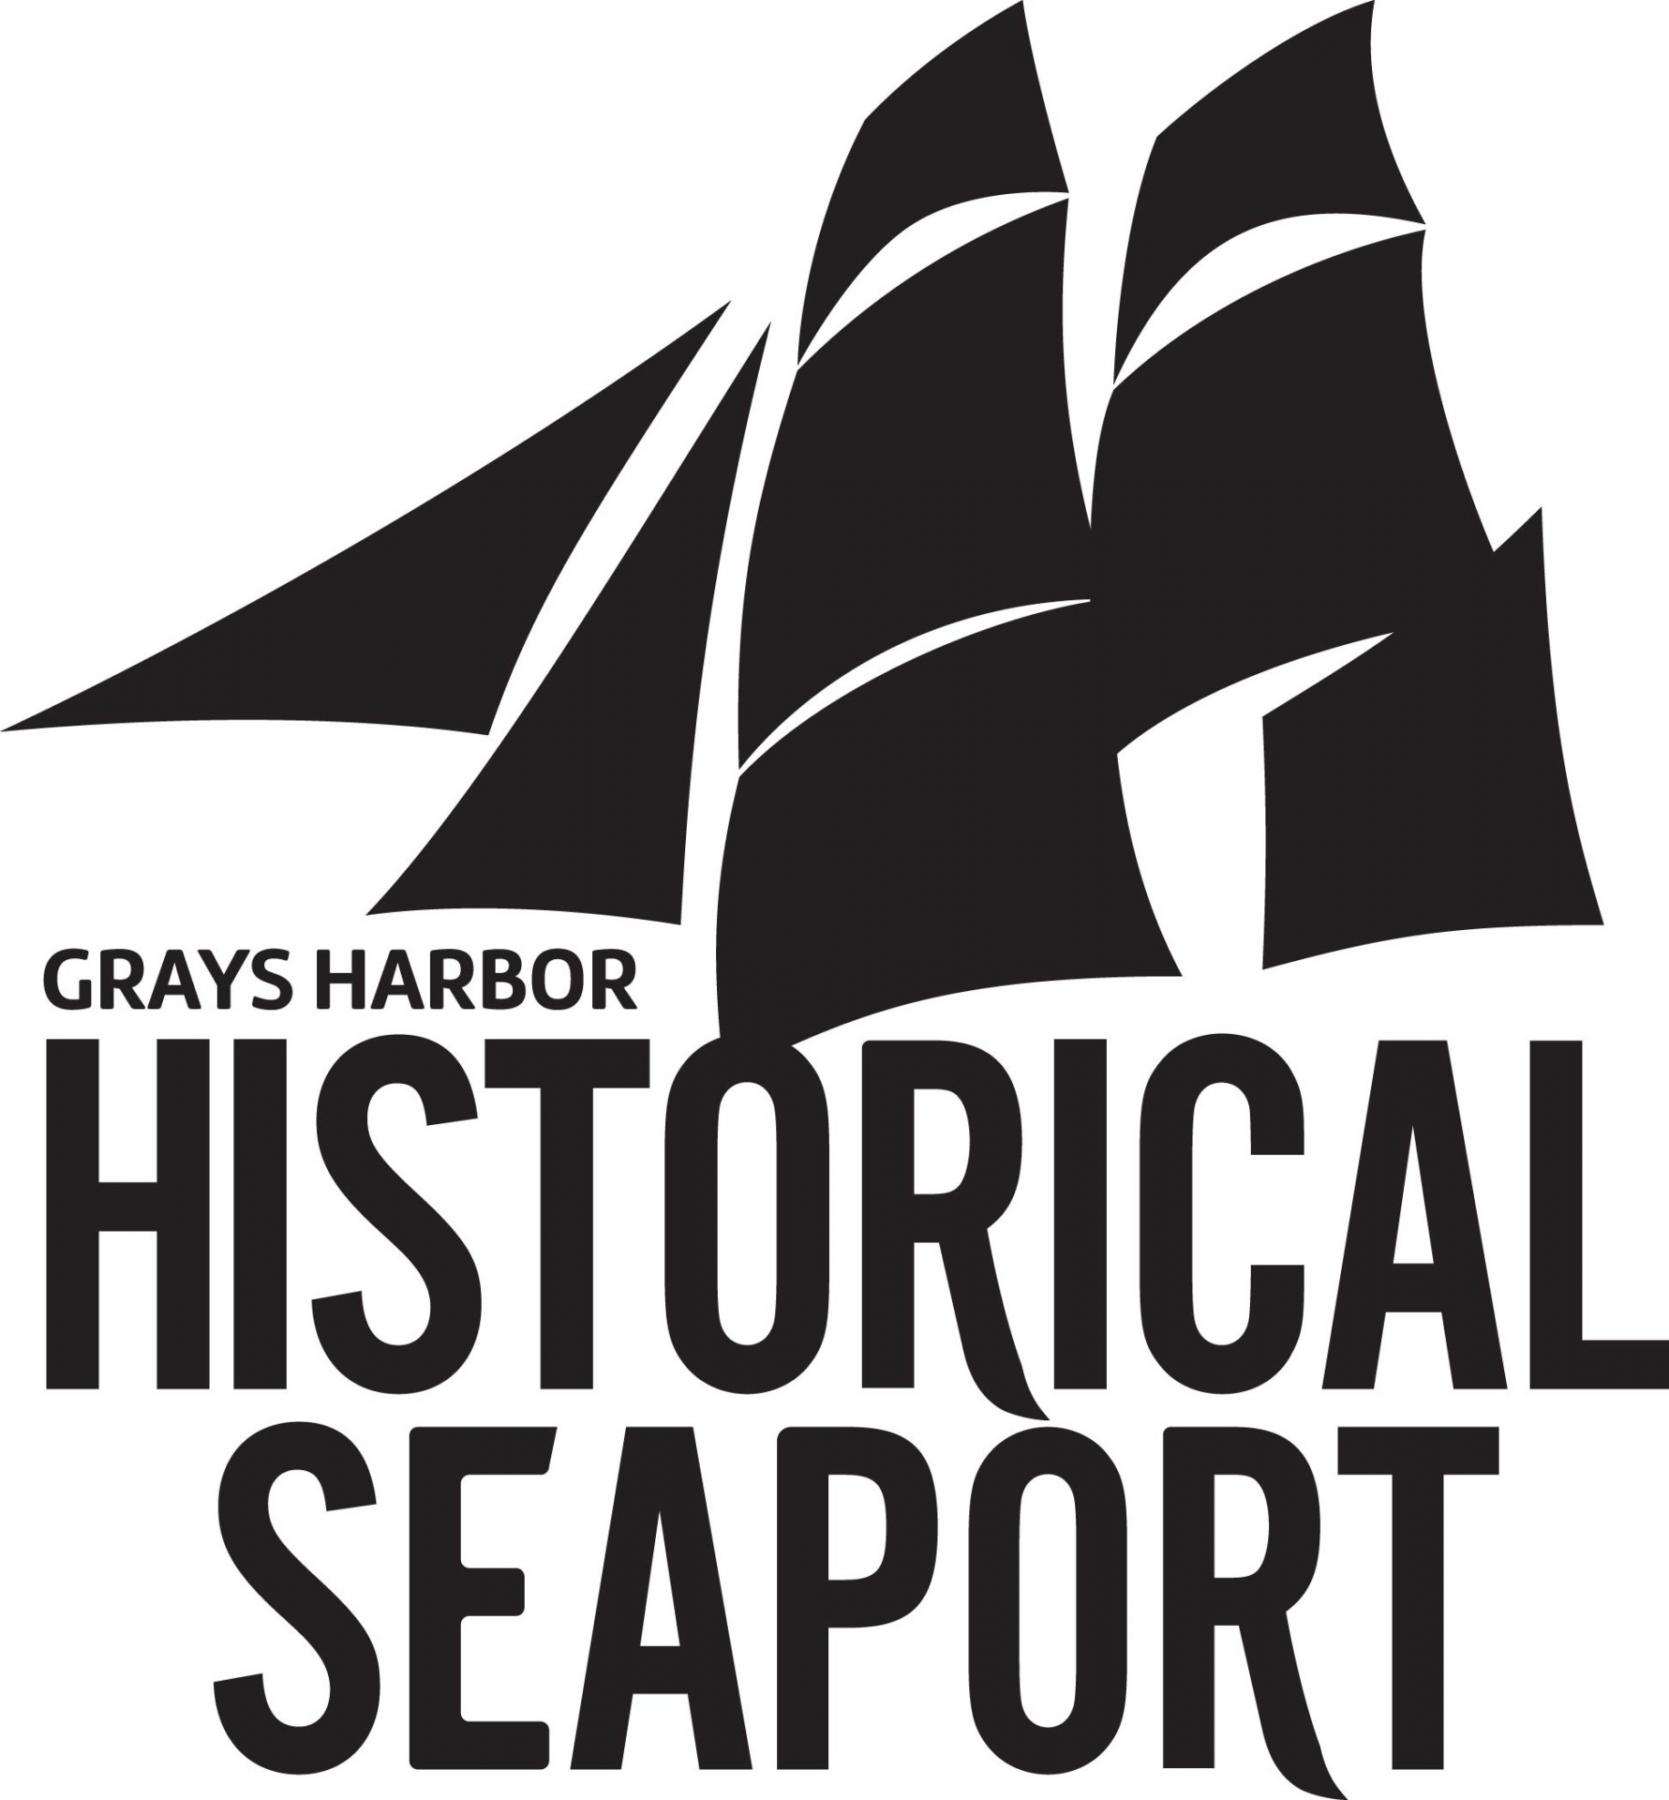 Grays Harbor Logo